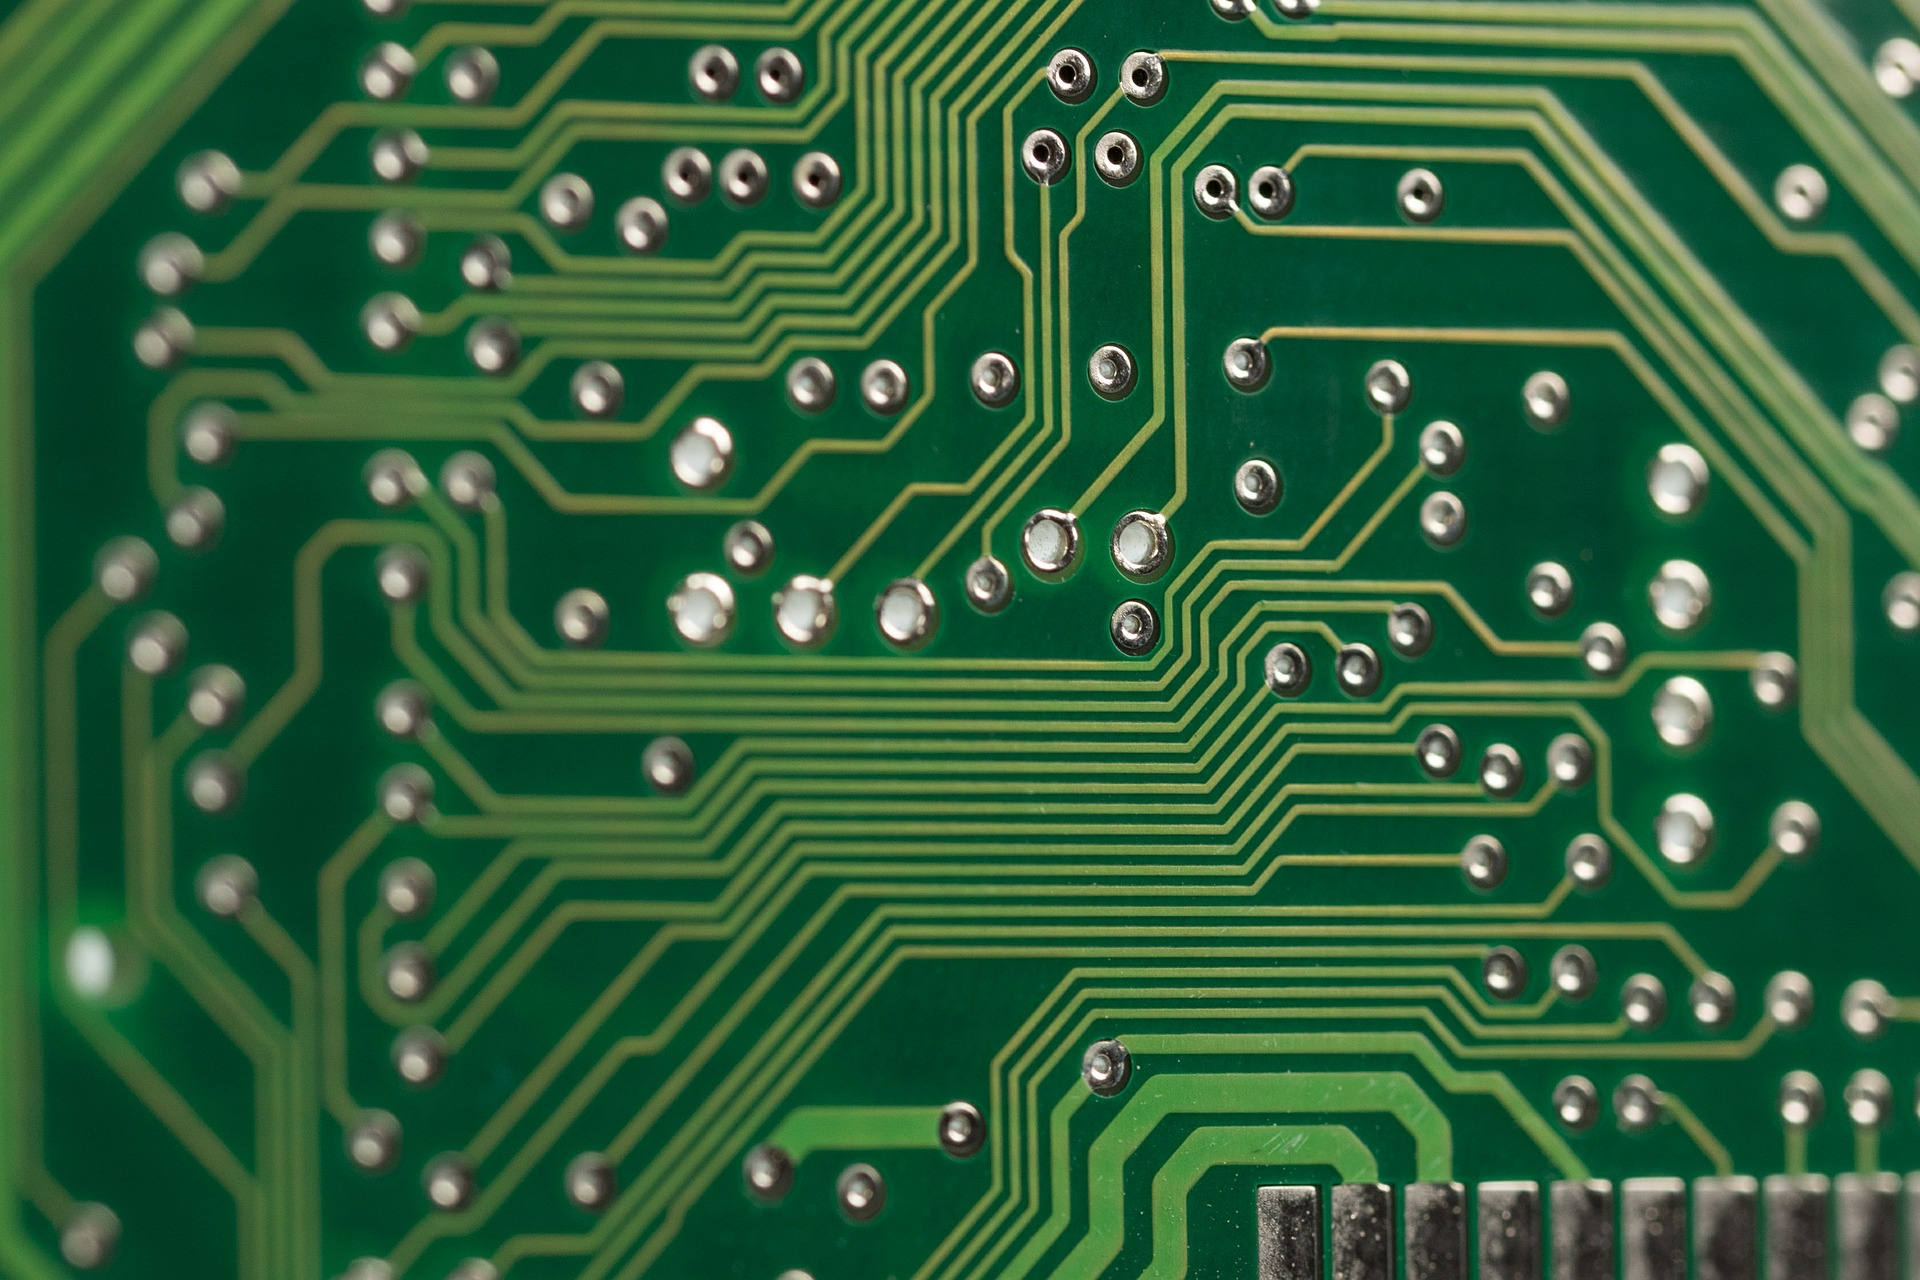 Trylene Inc Electronic Manufacturing Services Design Tools Give Engineers An Edge In Online Printed Circuit Board Boards